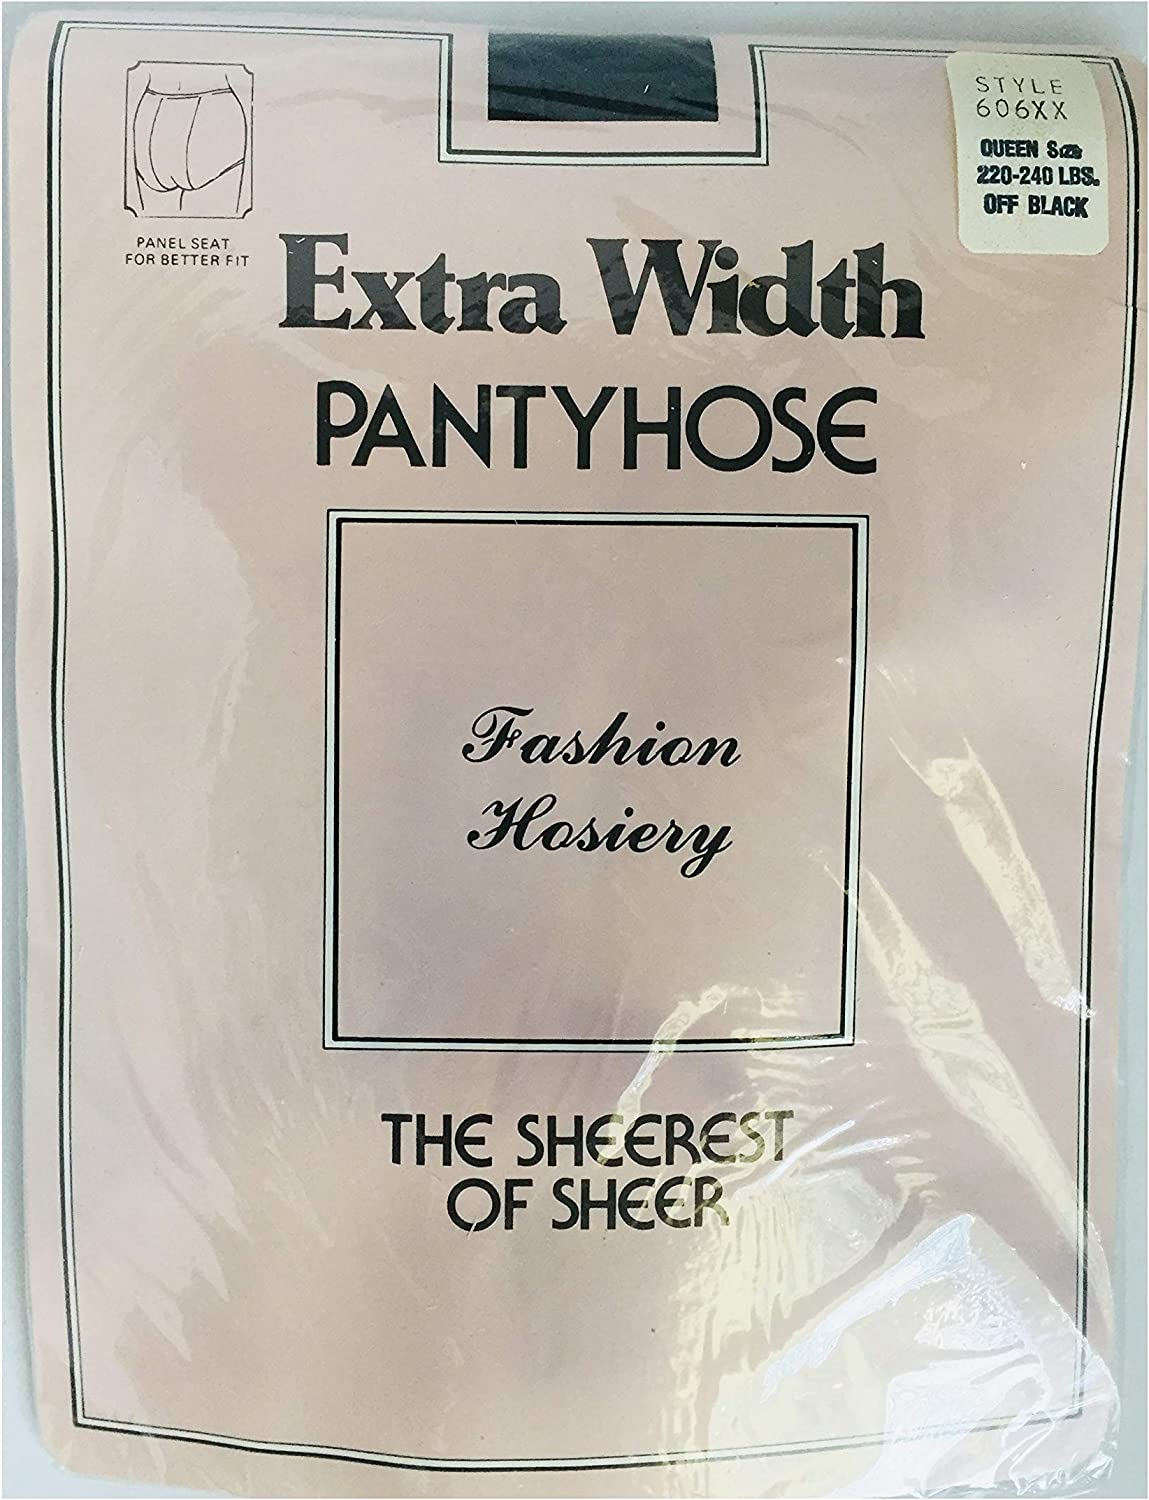 Fashion Hosiery Off Black Extra Width Pantyhose The Sheerest Of Sheer - Women Queen size